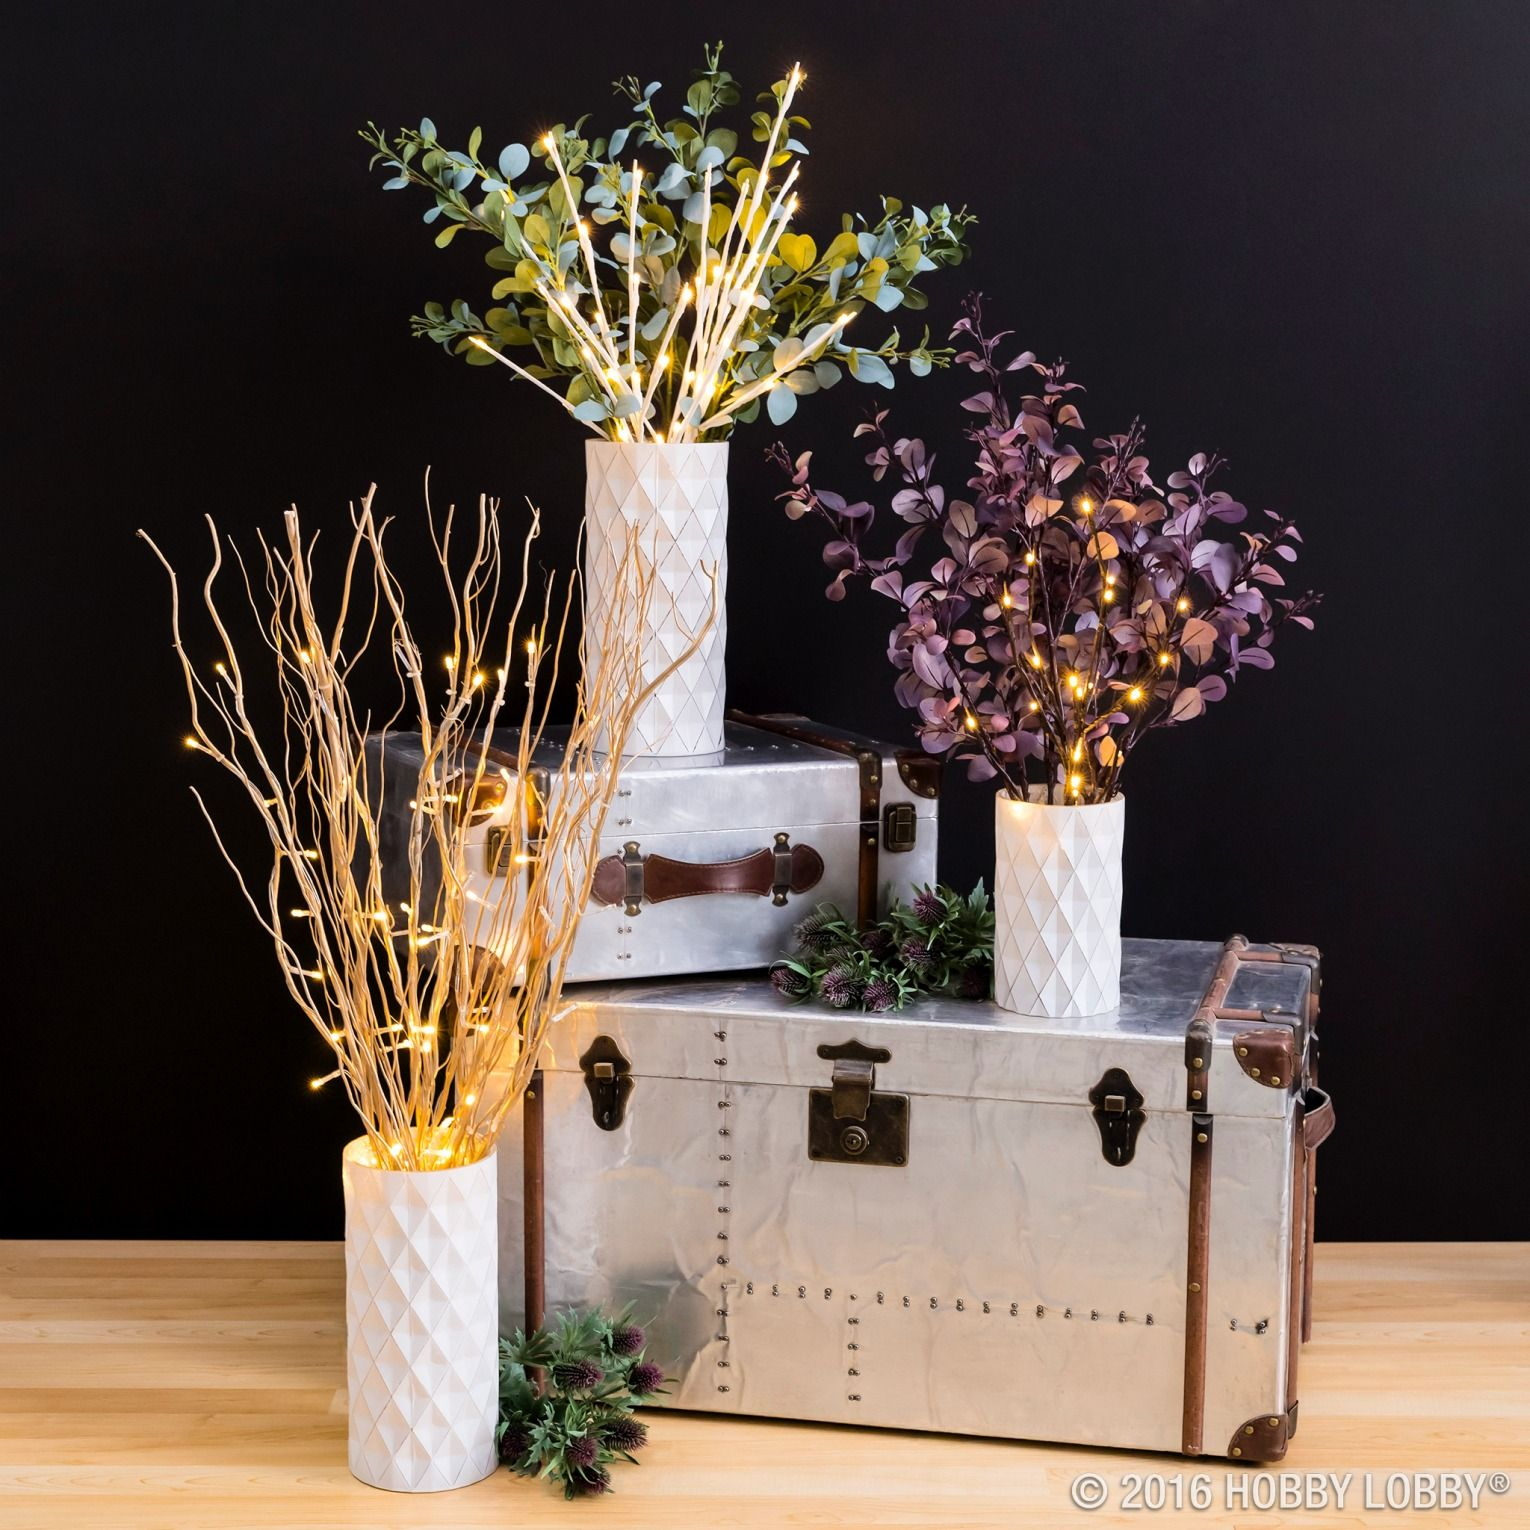 Add Elegance To Any Arrangement With Lighted Branches Featuring Warm,